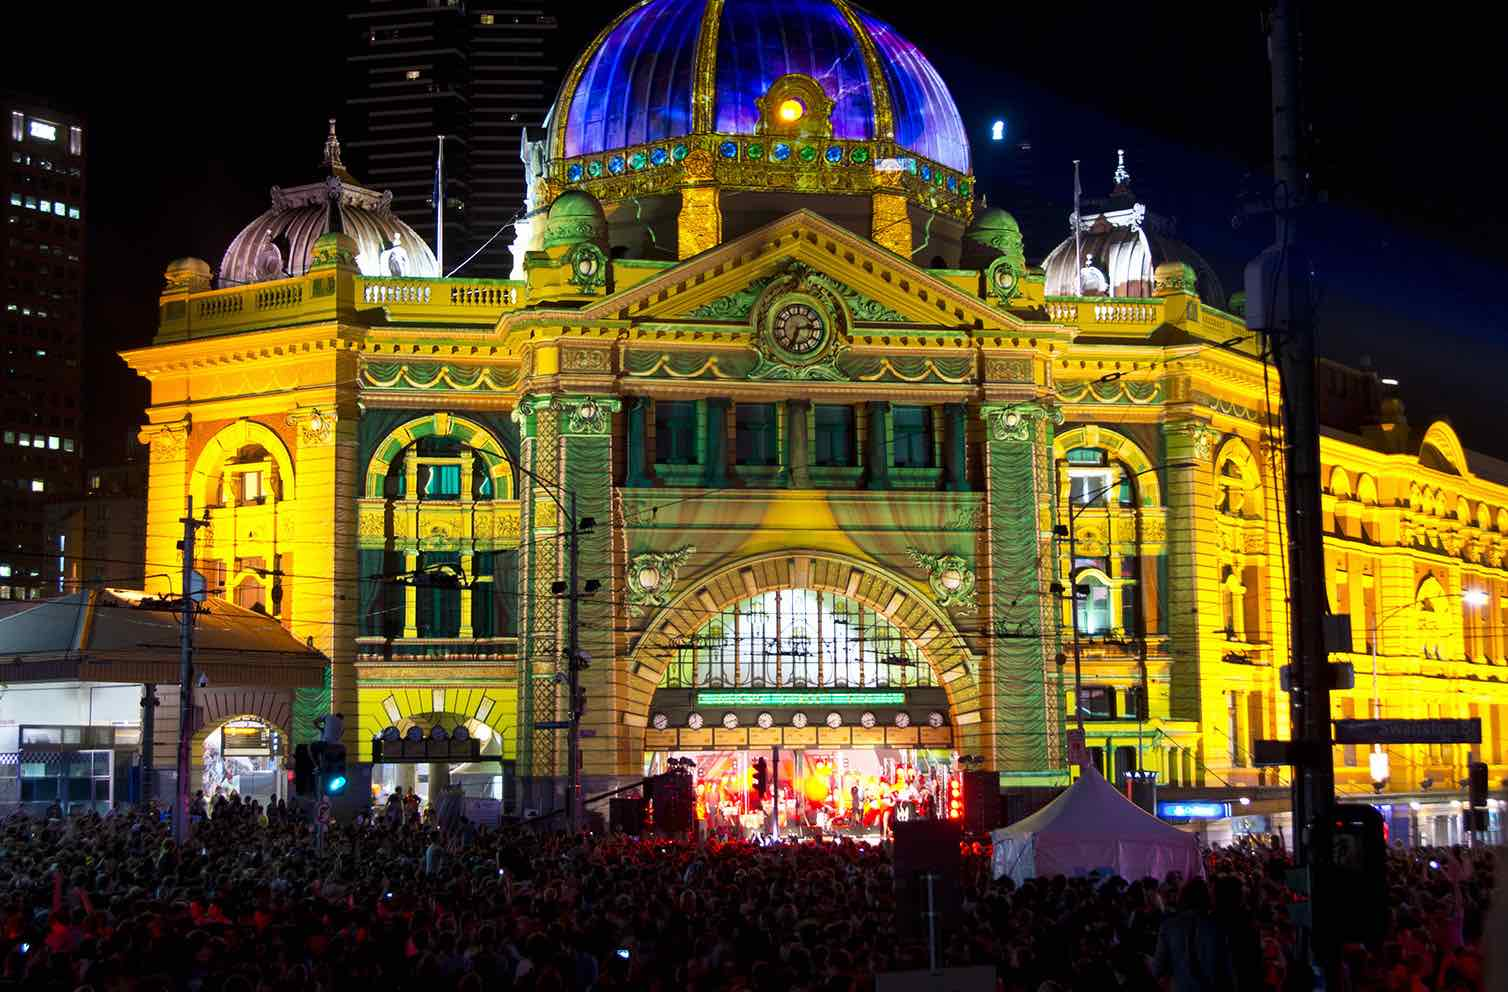 White Night arts festival at Flinders Street Station, Melbourne (Photo: Steve Collis/Flickr)